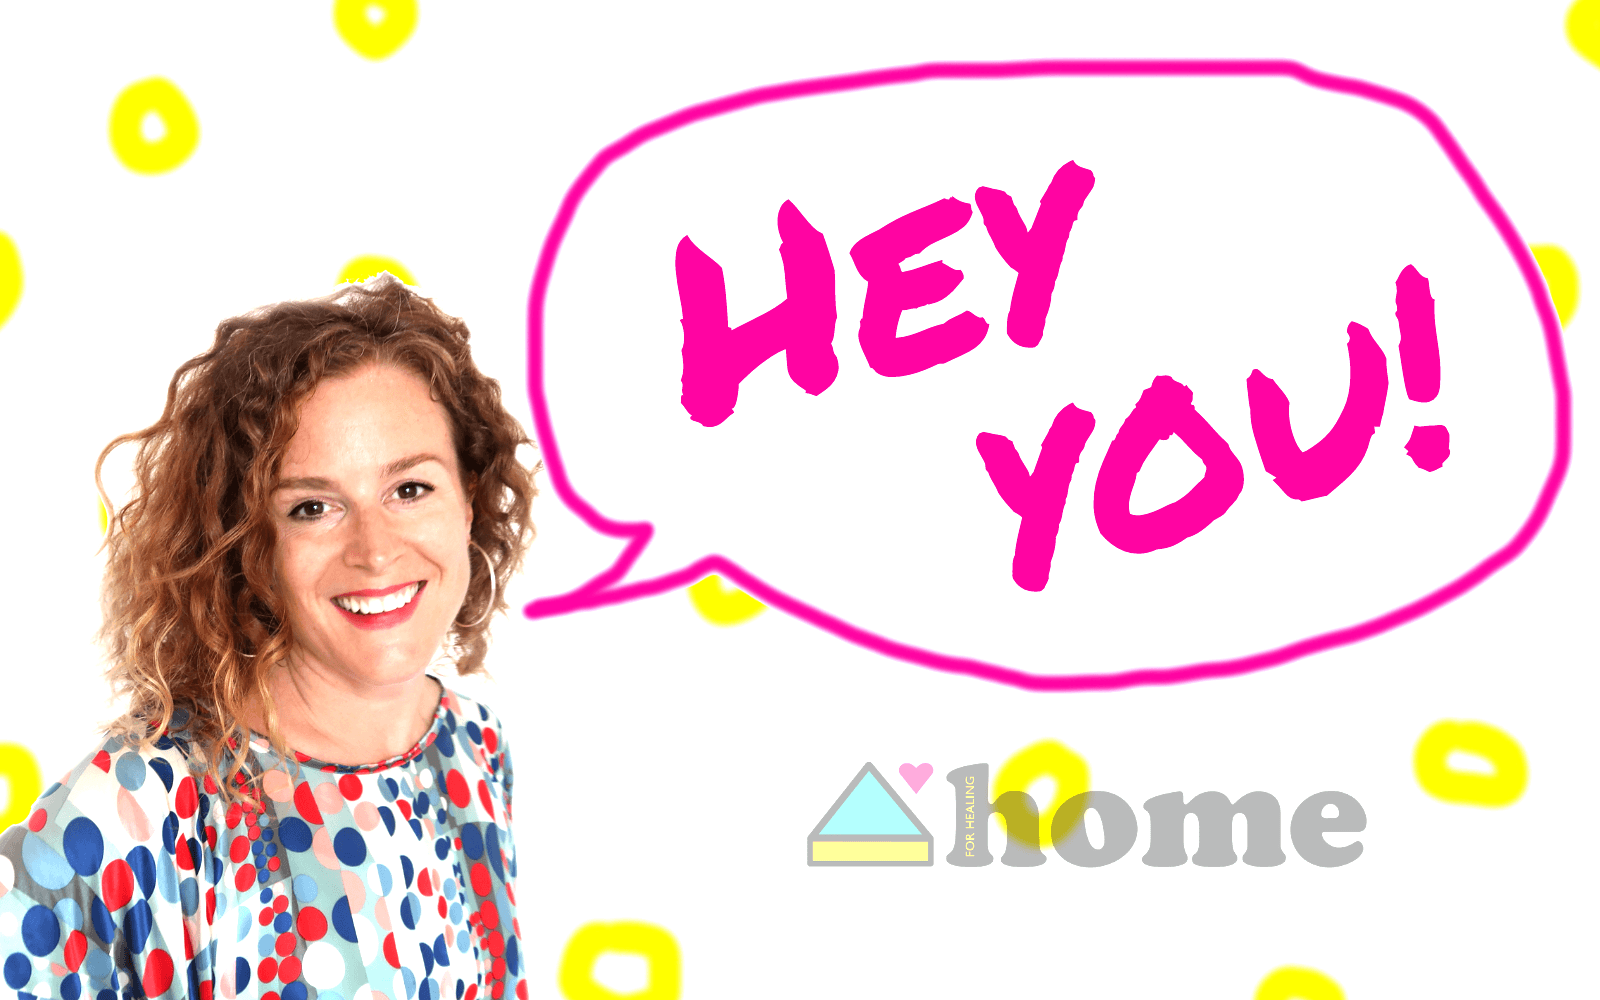 Join home banner saying Hey you